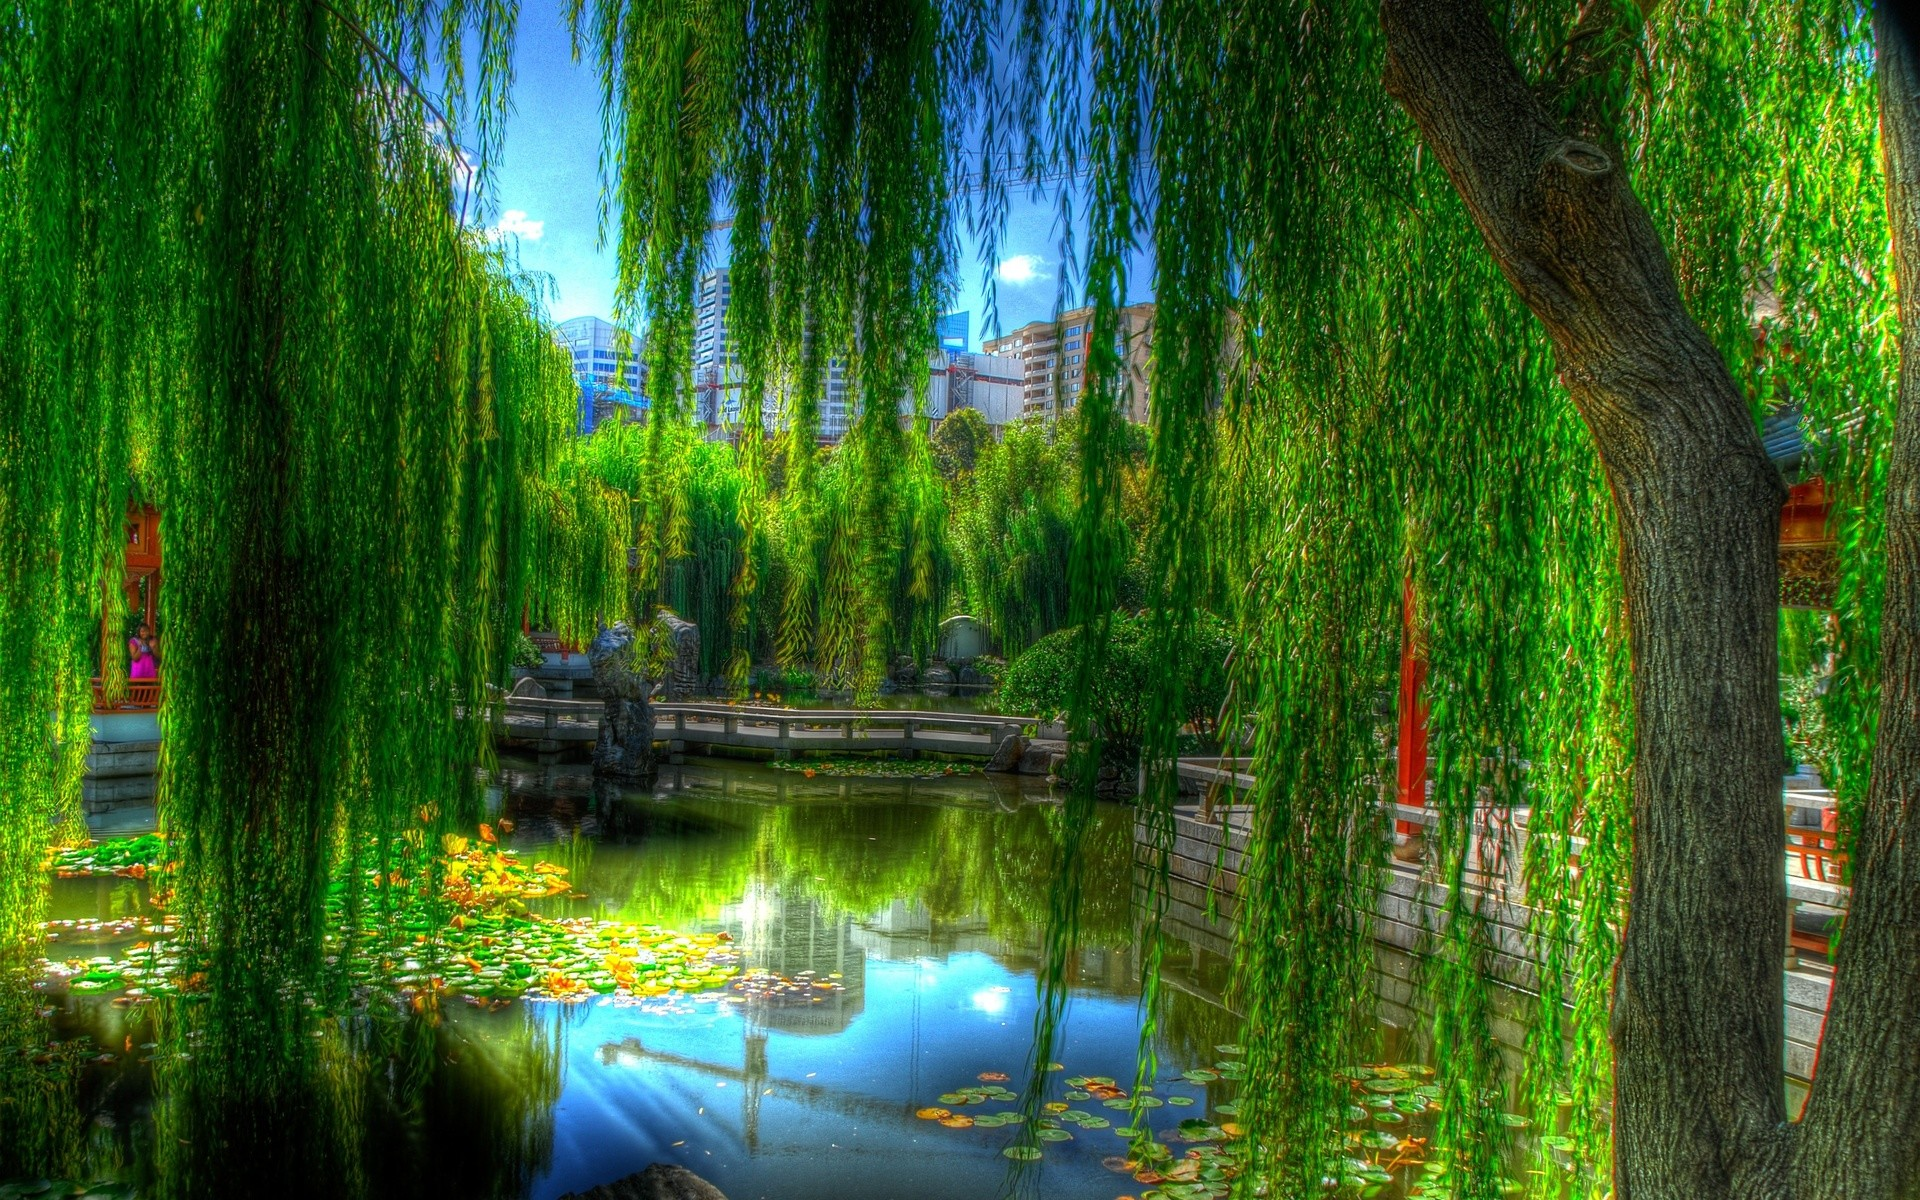 Res: 1920x1200, Landscapes nature lakes asian oriental reflection trees green colors garden  artistic wallpaper |  | 24188 | WallpaperUP